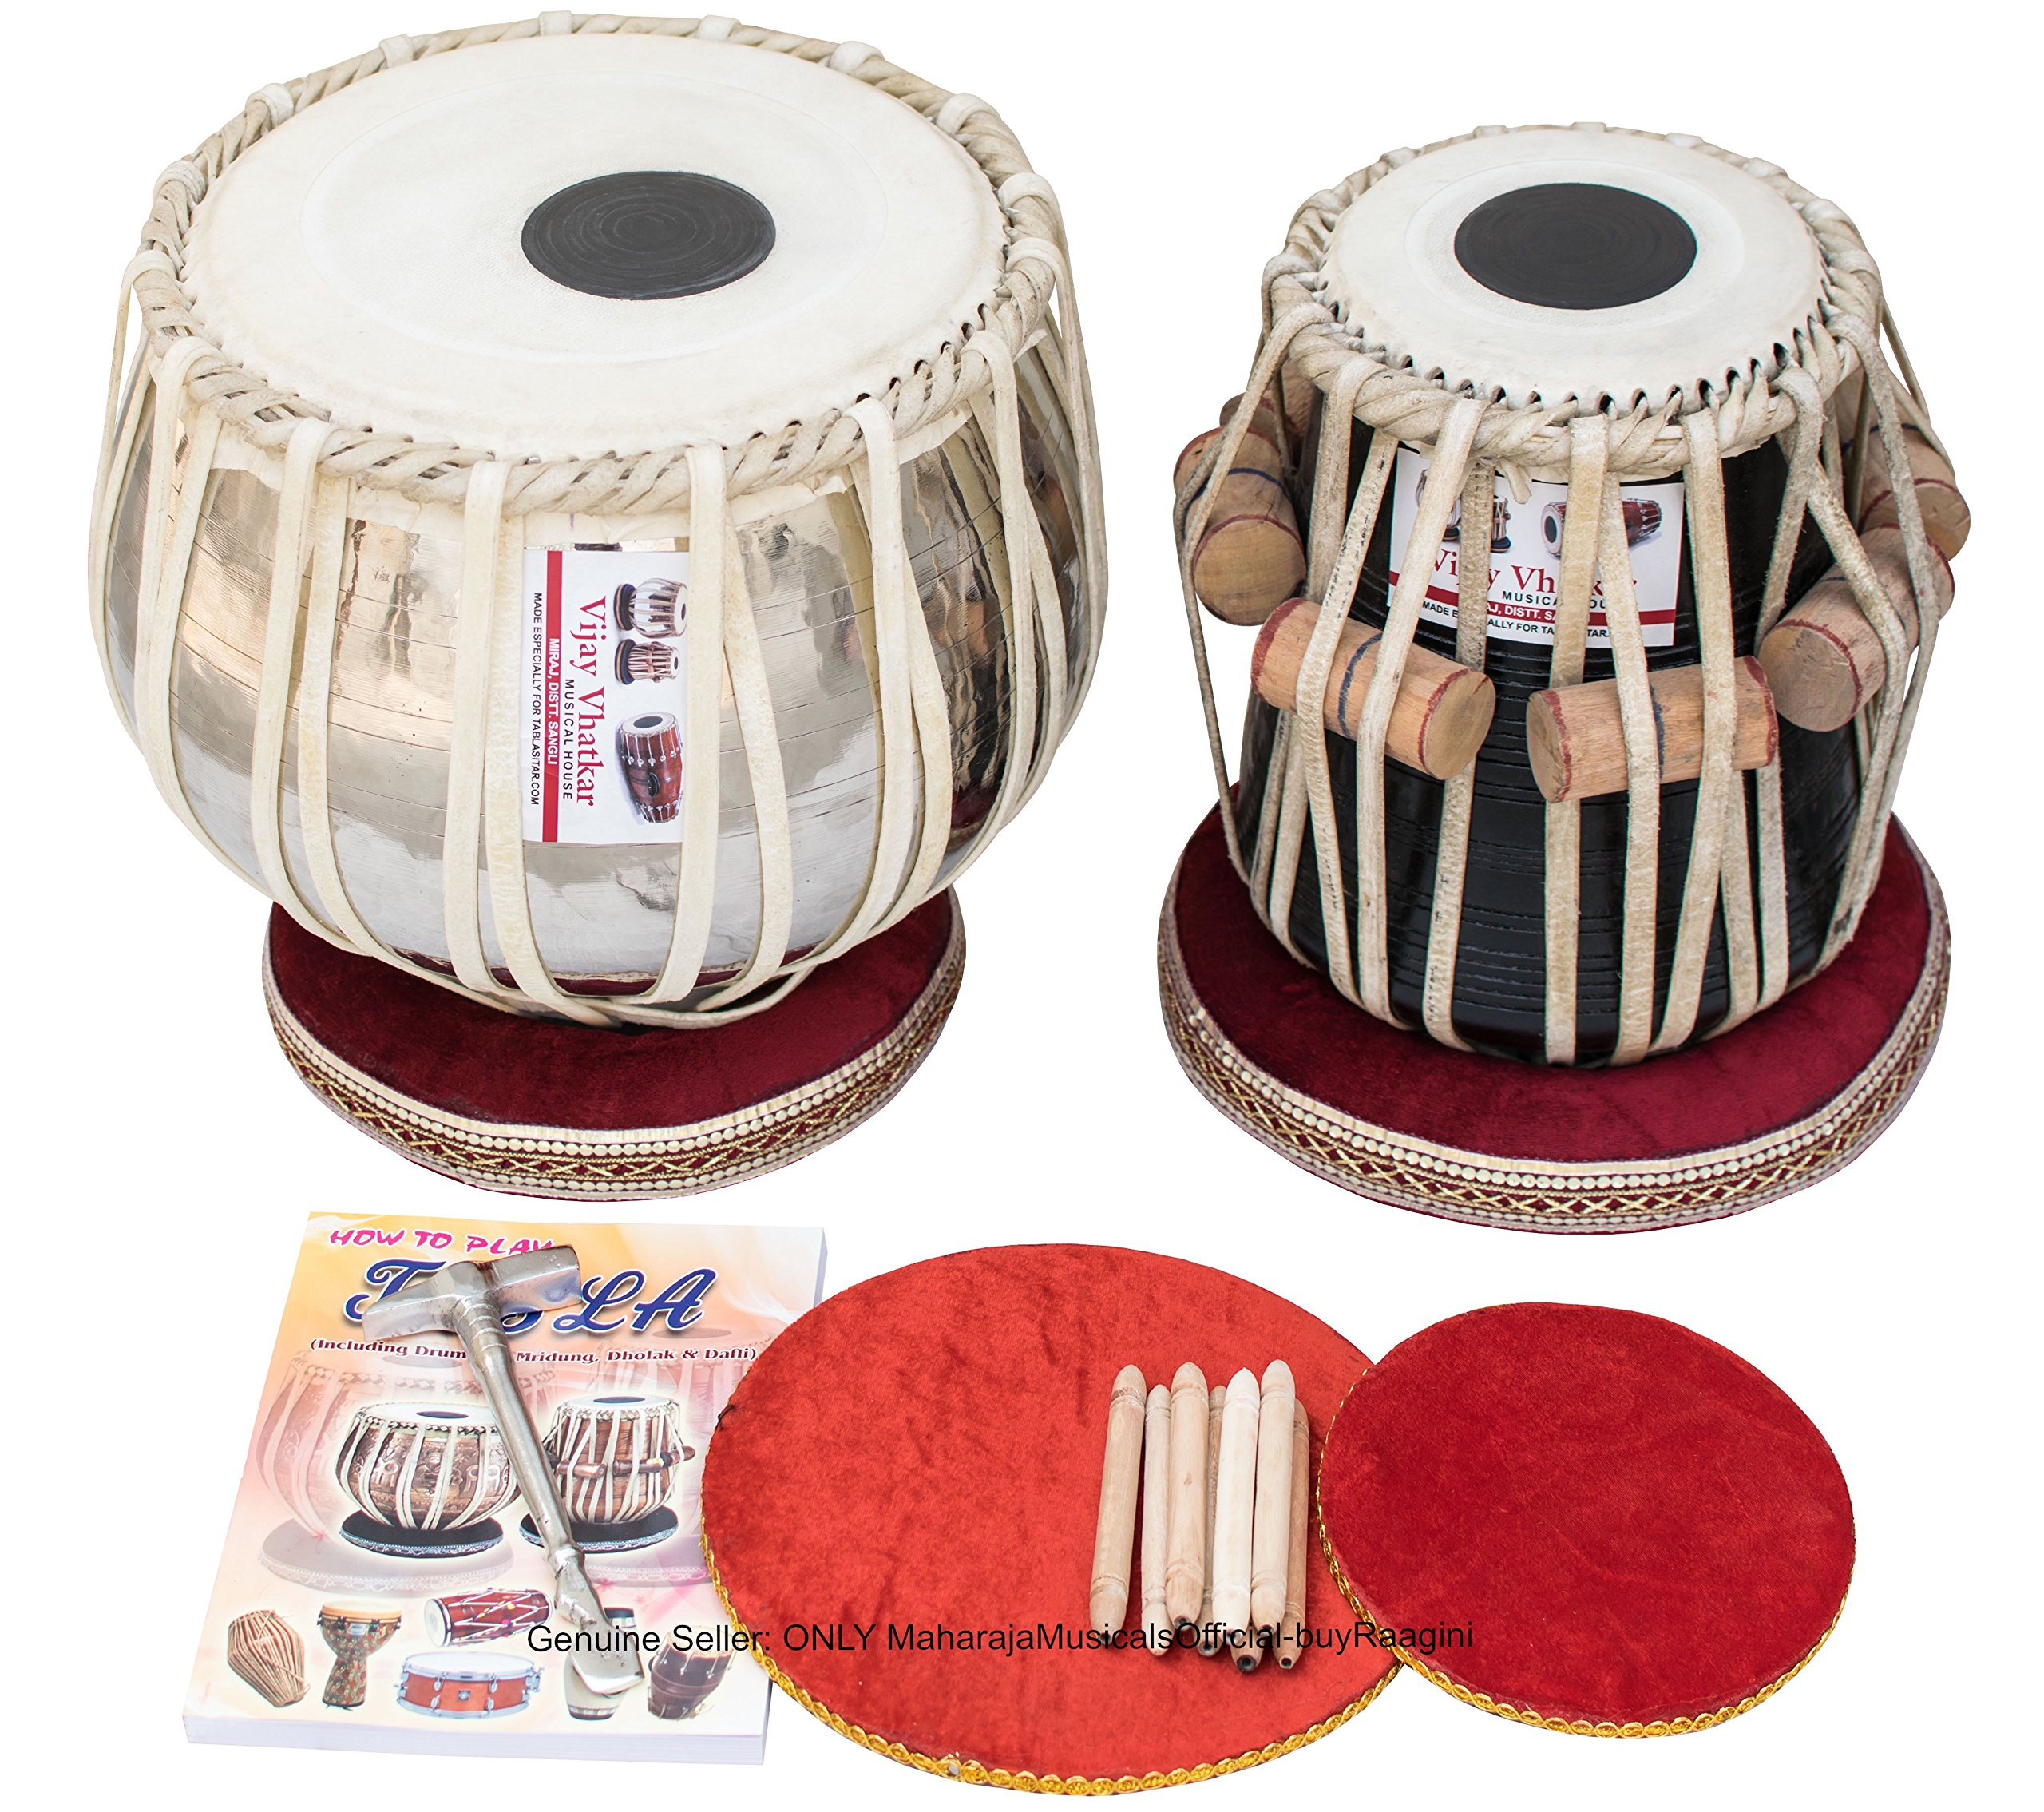 Tabla Set by Vijay Vhatkar, Concert Quality, 2.5 Kilograms Chromed Brass Bayan, Sheesham Tabla Dayan, Book, Hammer, Cushions, Cover, Tabla Drums Musical Instrument (PDI-BBE) by VHATKAR